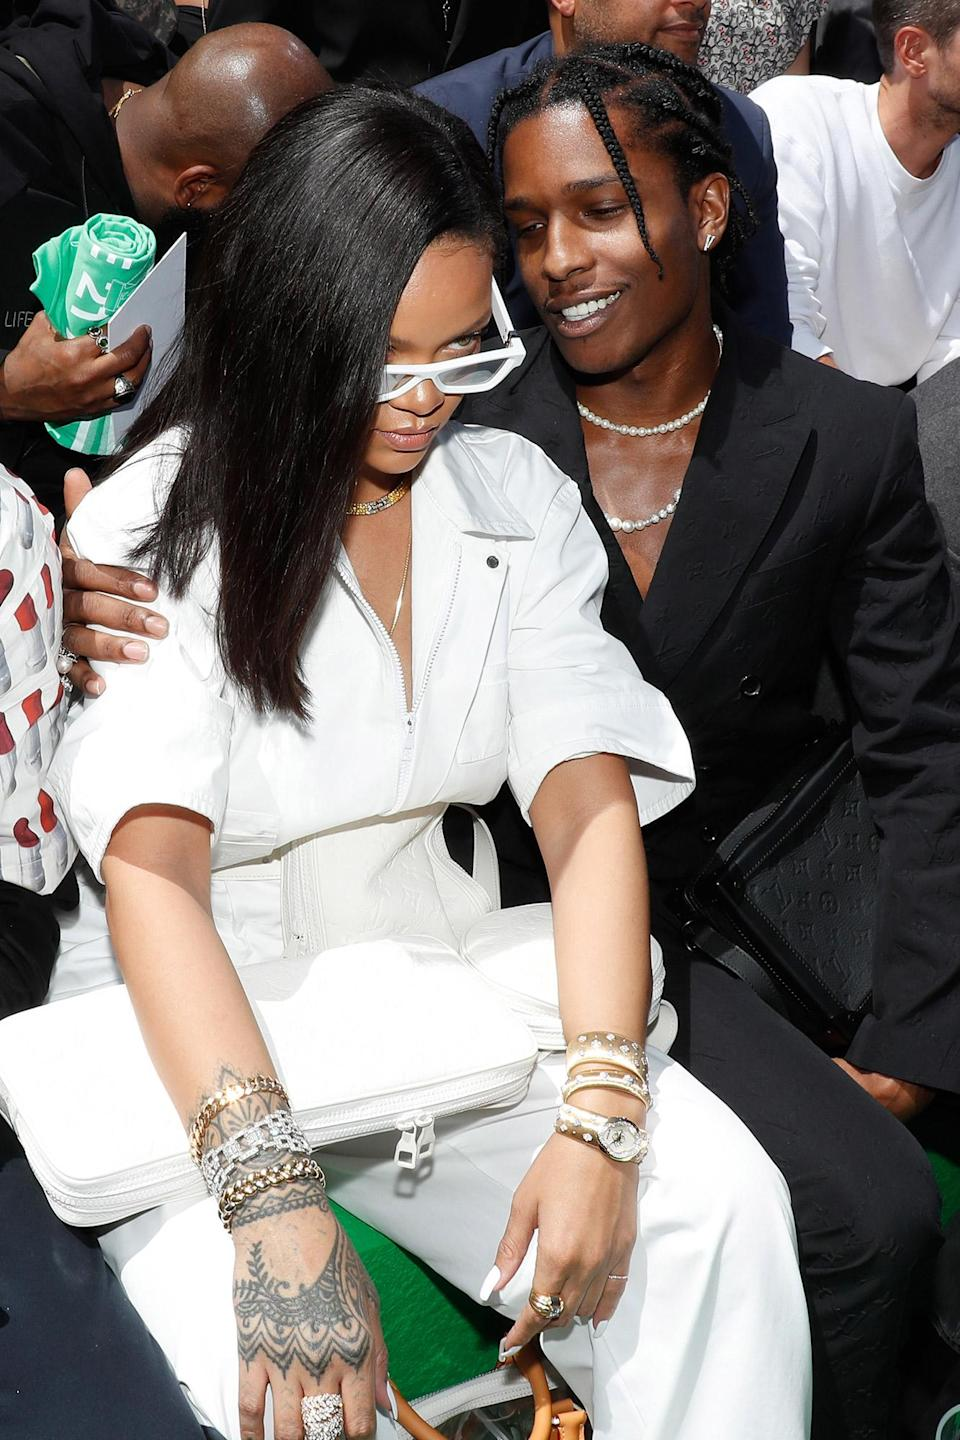 <p>Doesn't our charming couple look so chic? The two donned a more elegant set of outfits that reflected a relaxed form of suiting on Rihanna and a more traditional idea of a suit on Rocky at a 2018 fashion show in Paris.</p>